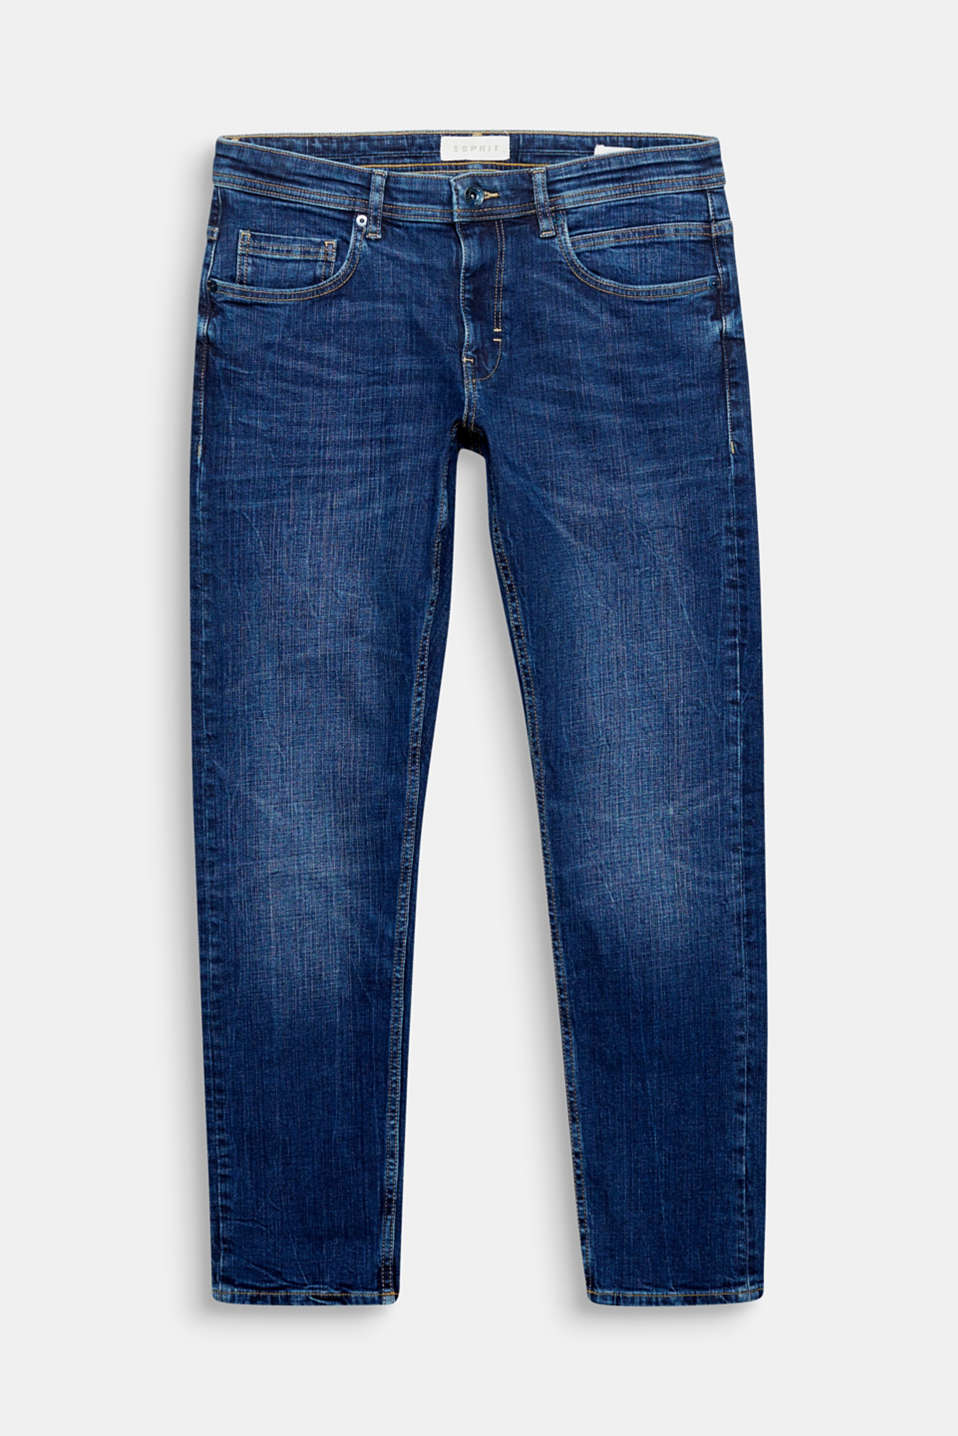 Wear these cropped 7/8-length jeans in a five-pocket design either rolled up or with a little turn-up for a trendy look.